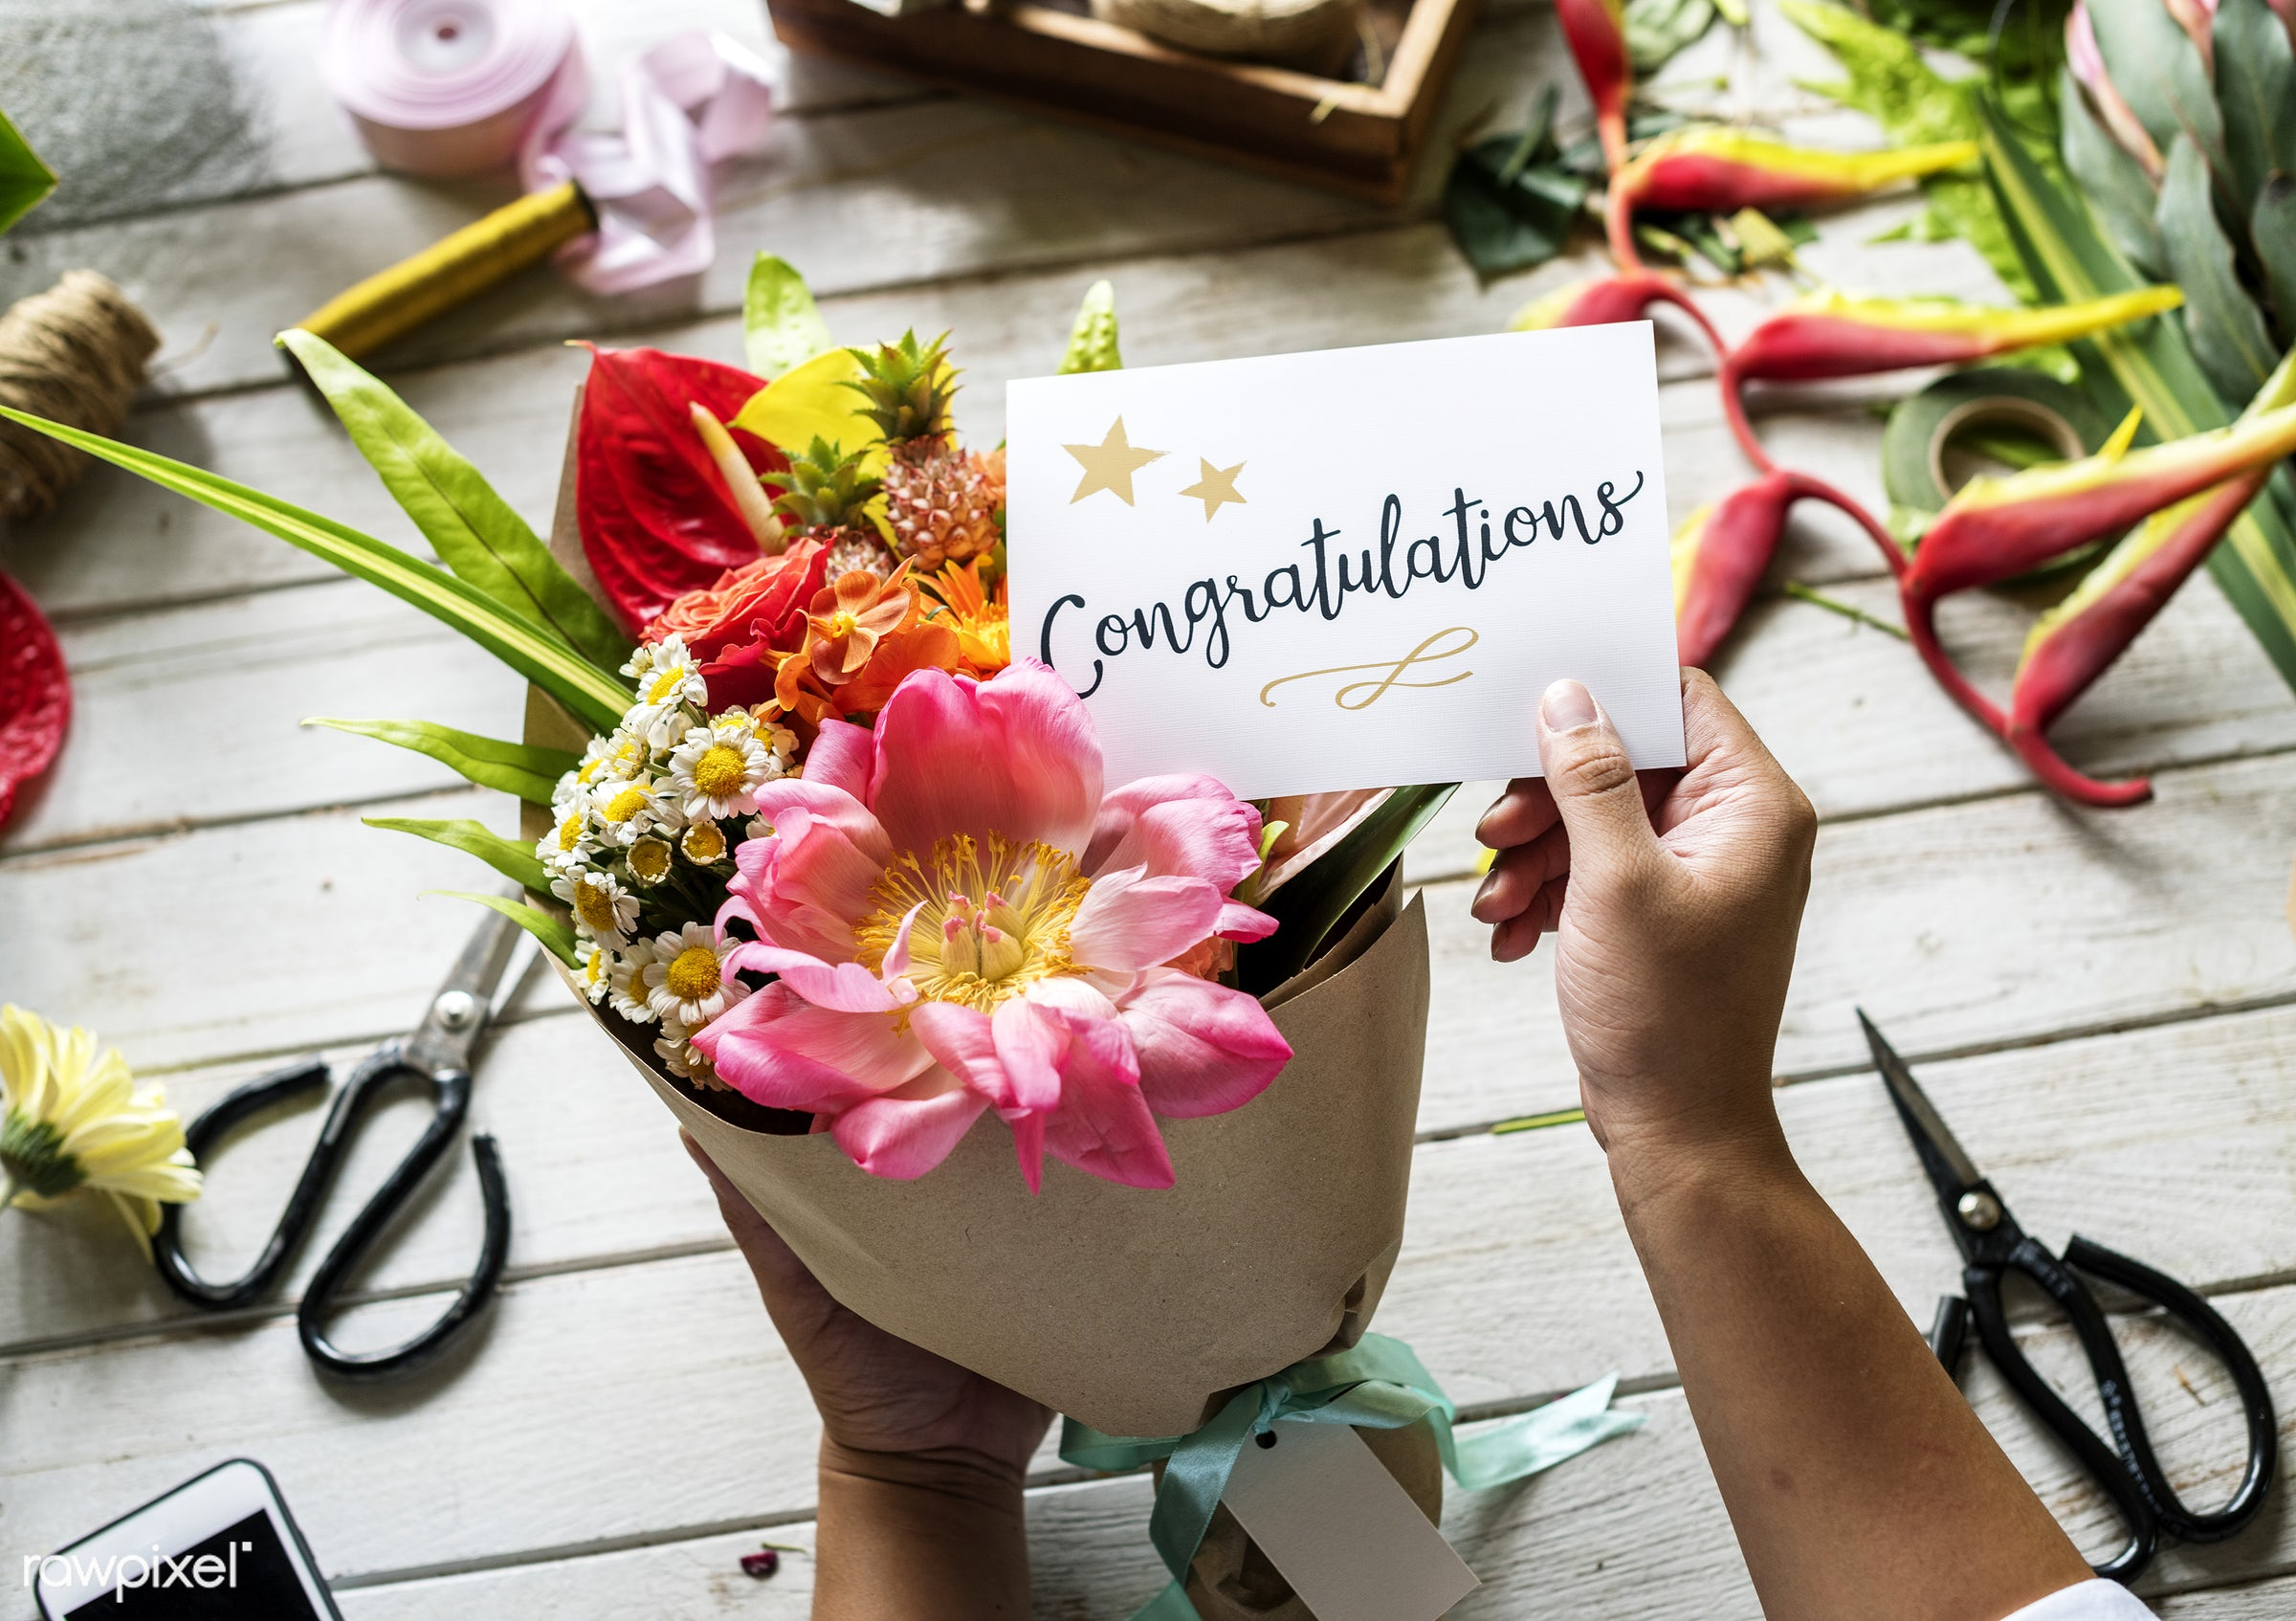 expression, bouquet, congratulations, leaves, diy, congrats, card, cheerful, flower, victory, achievement, honor, greeting,...